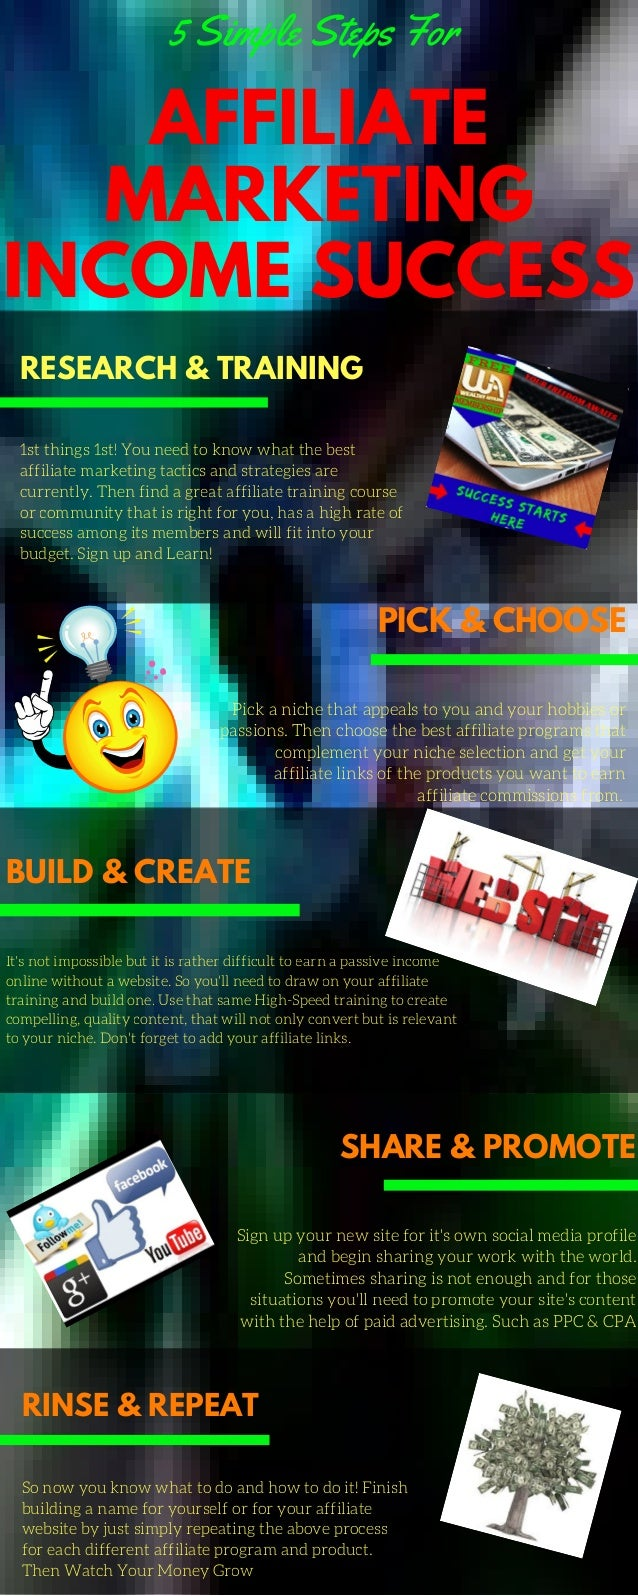 5 Simple Steps For� AFFILIATE MARKETING INCOME SUCCESS PICK & CHOOSE Pick a niche that appeals to you and your hobbies or ...